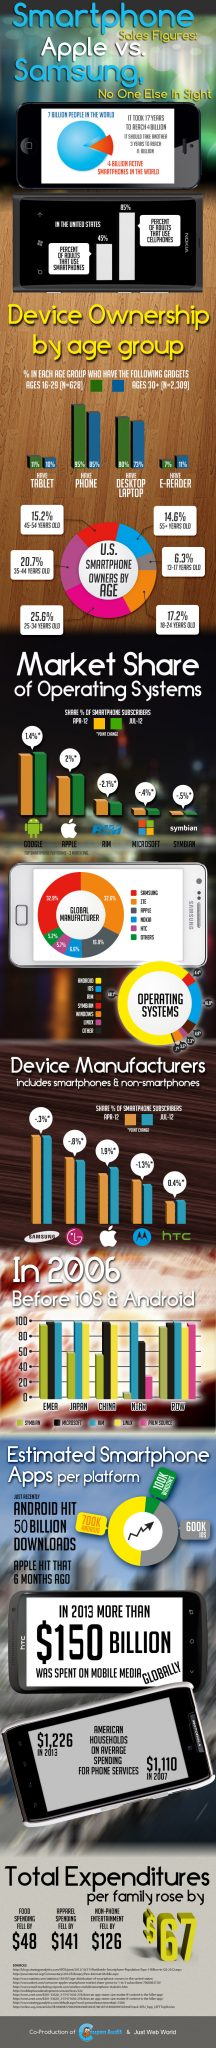 Smartphone-Sales-Figures-Apple-vs-Samsung-No-One-Else-In-Sight